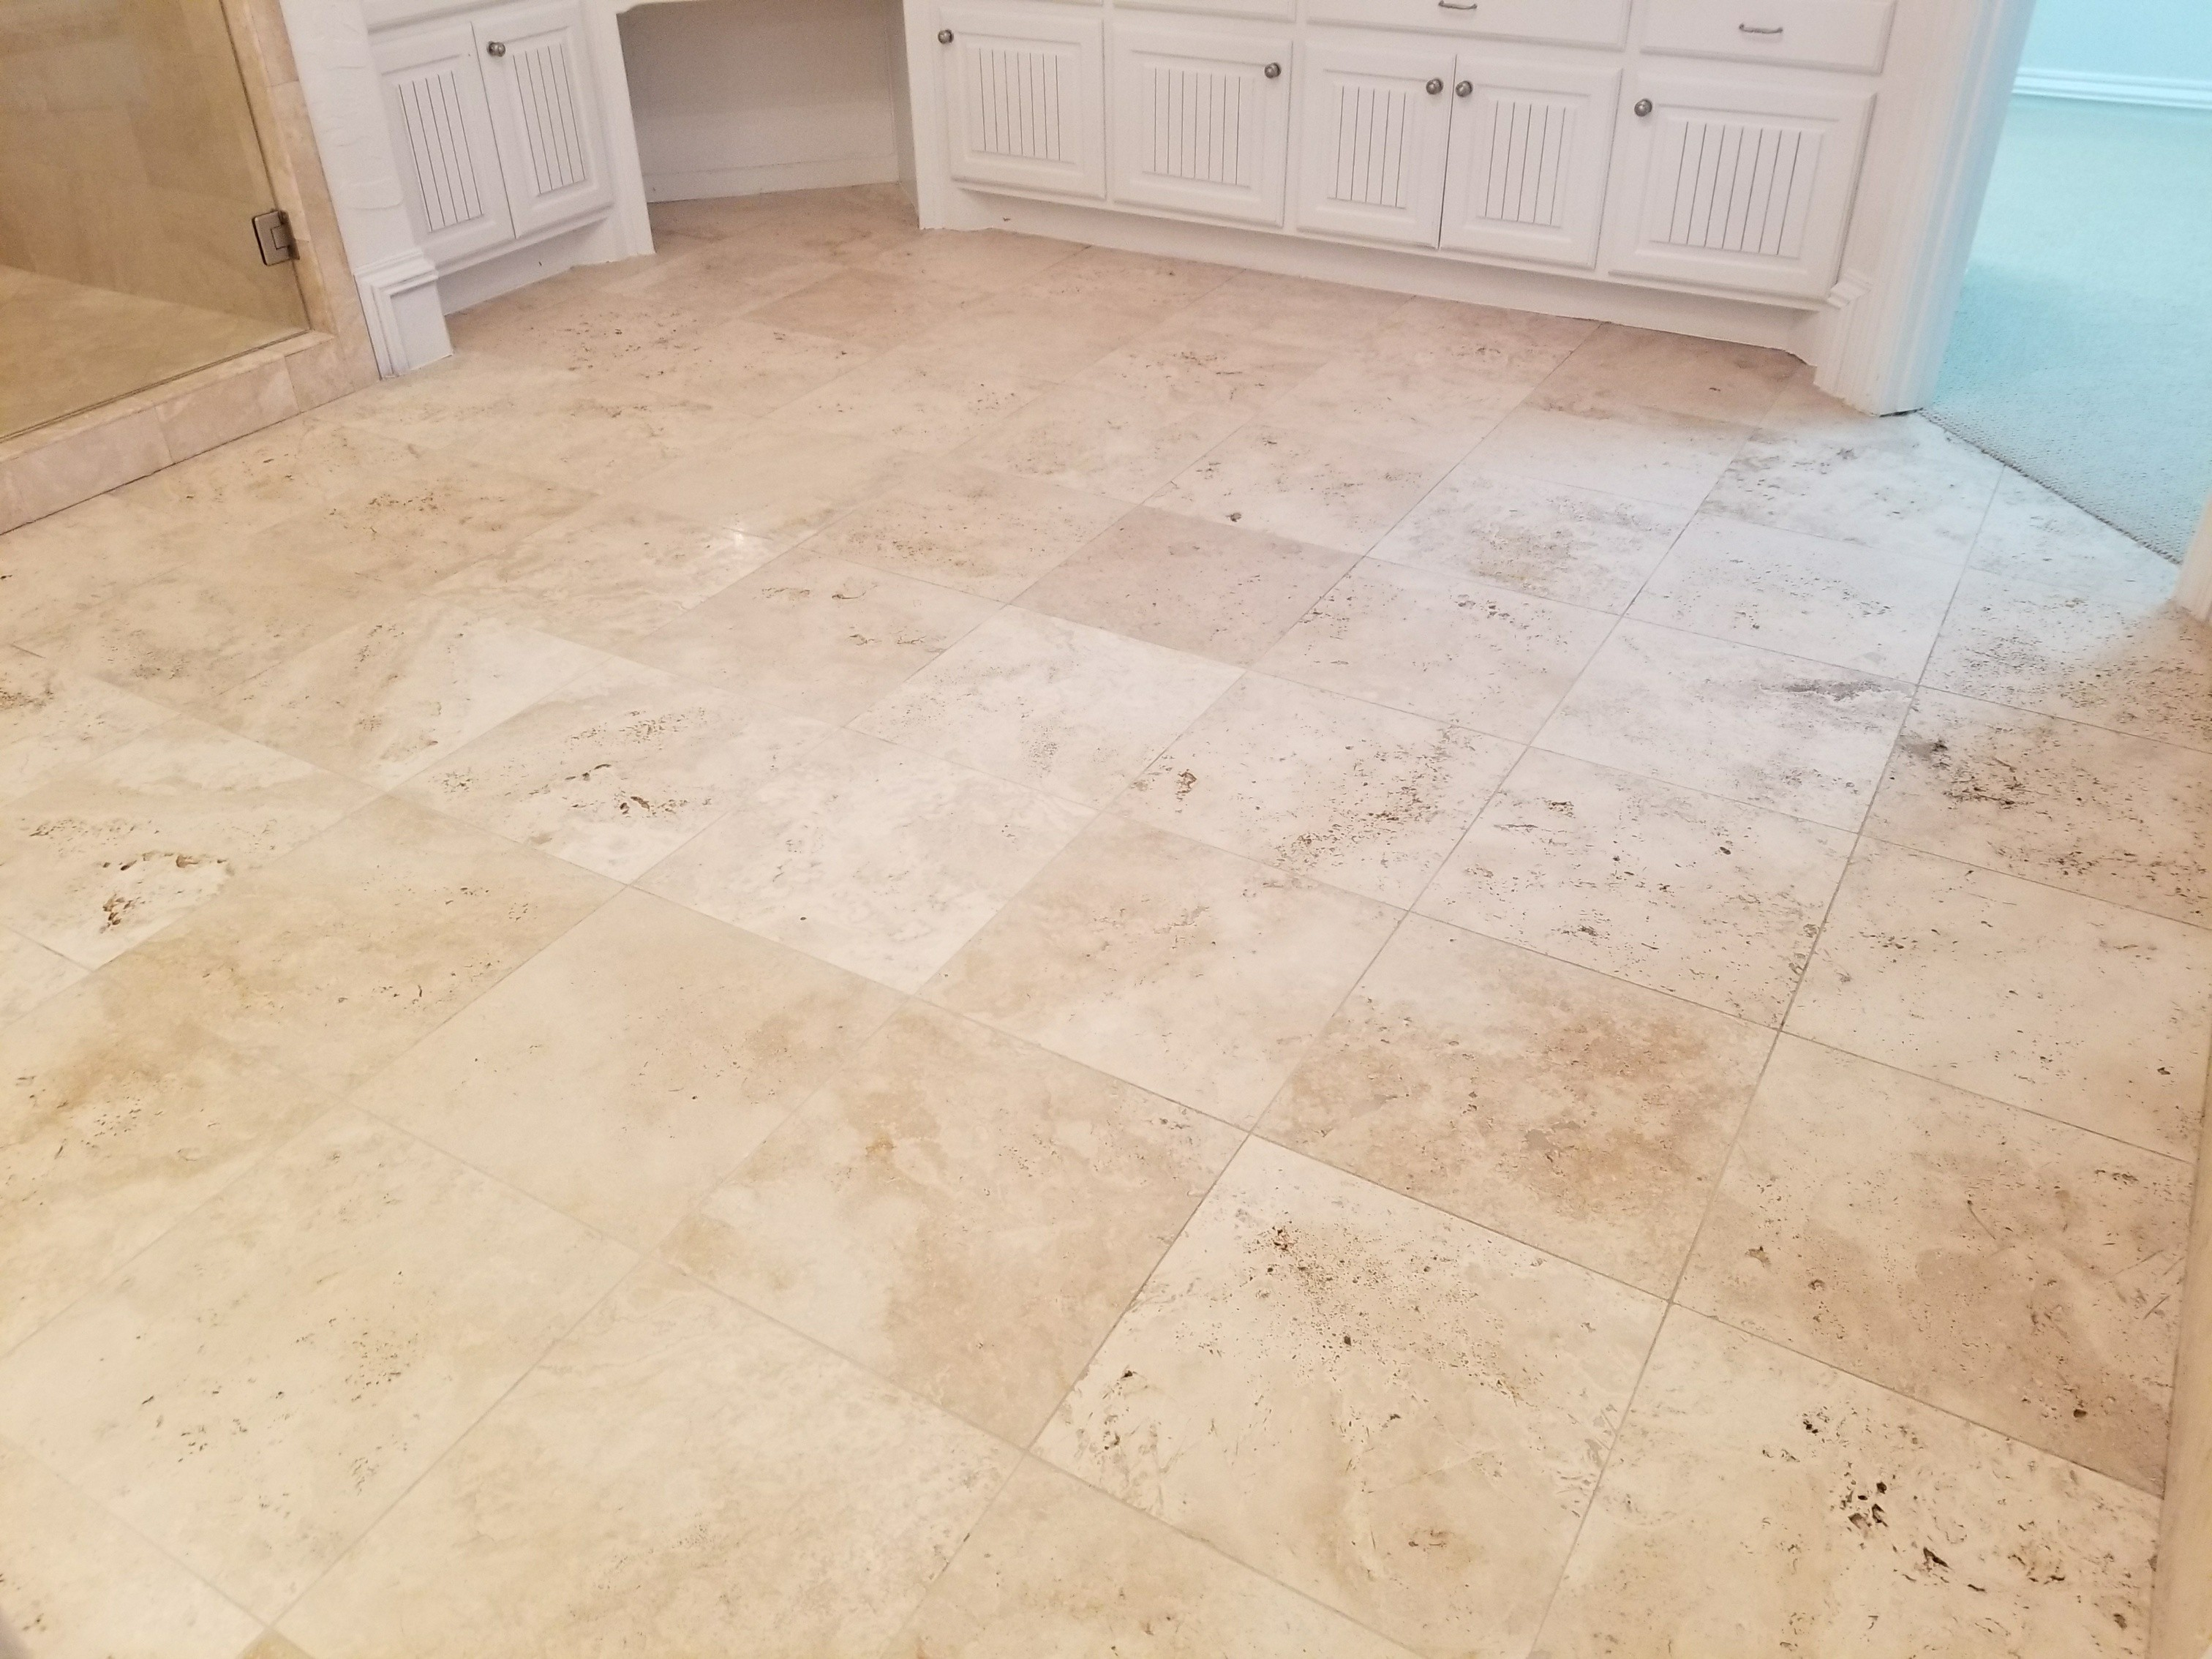 Steam Cleaning Travertine Floors